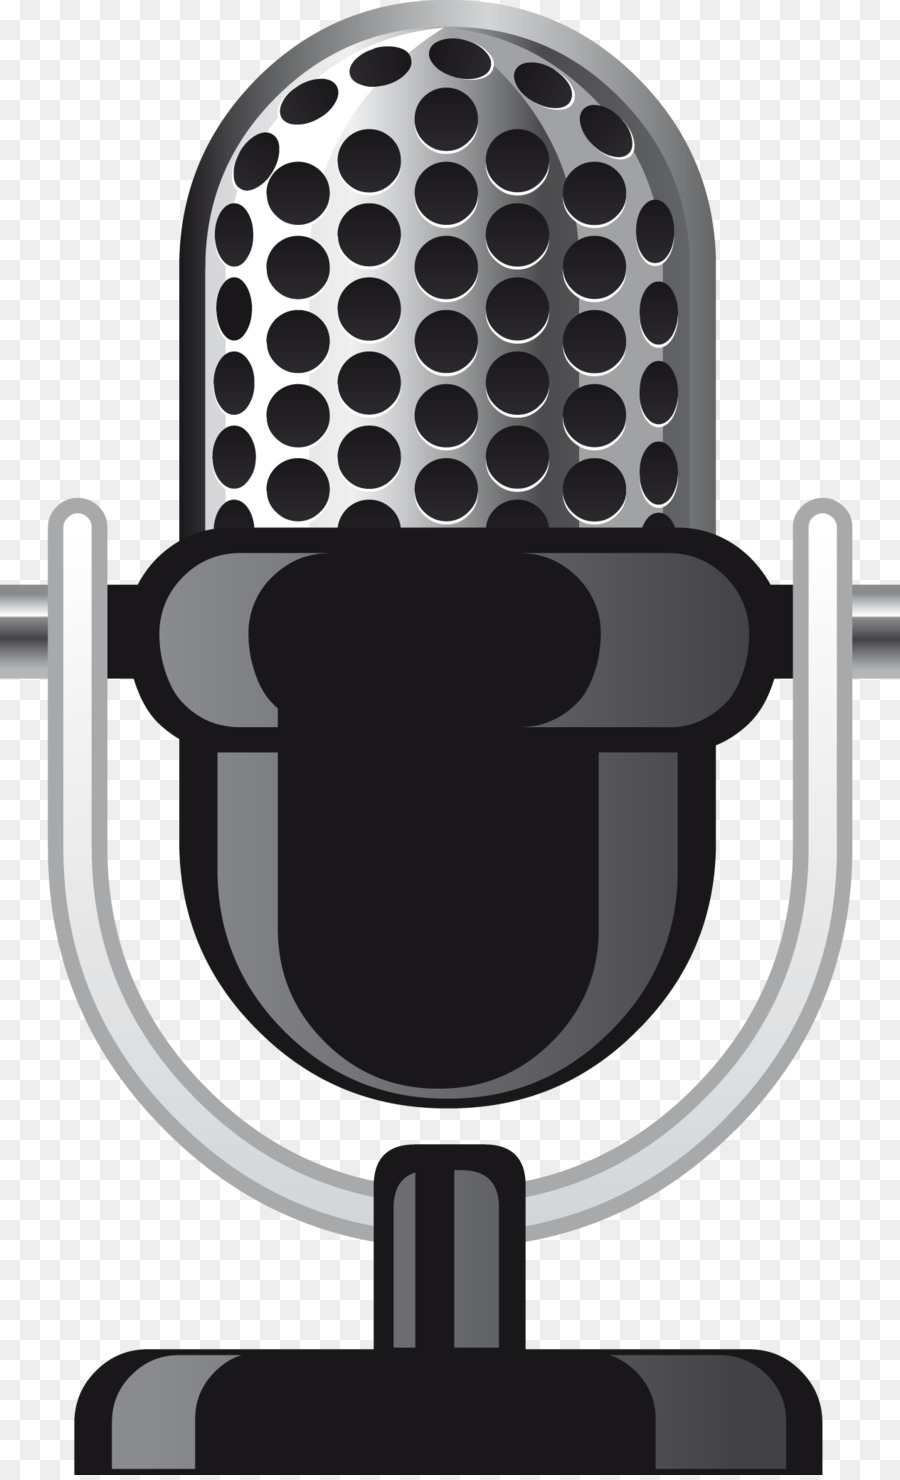 App Store Microphone png download - 1265*2073 - Free Transparent App